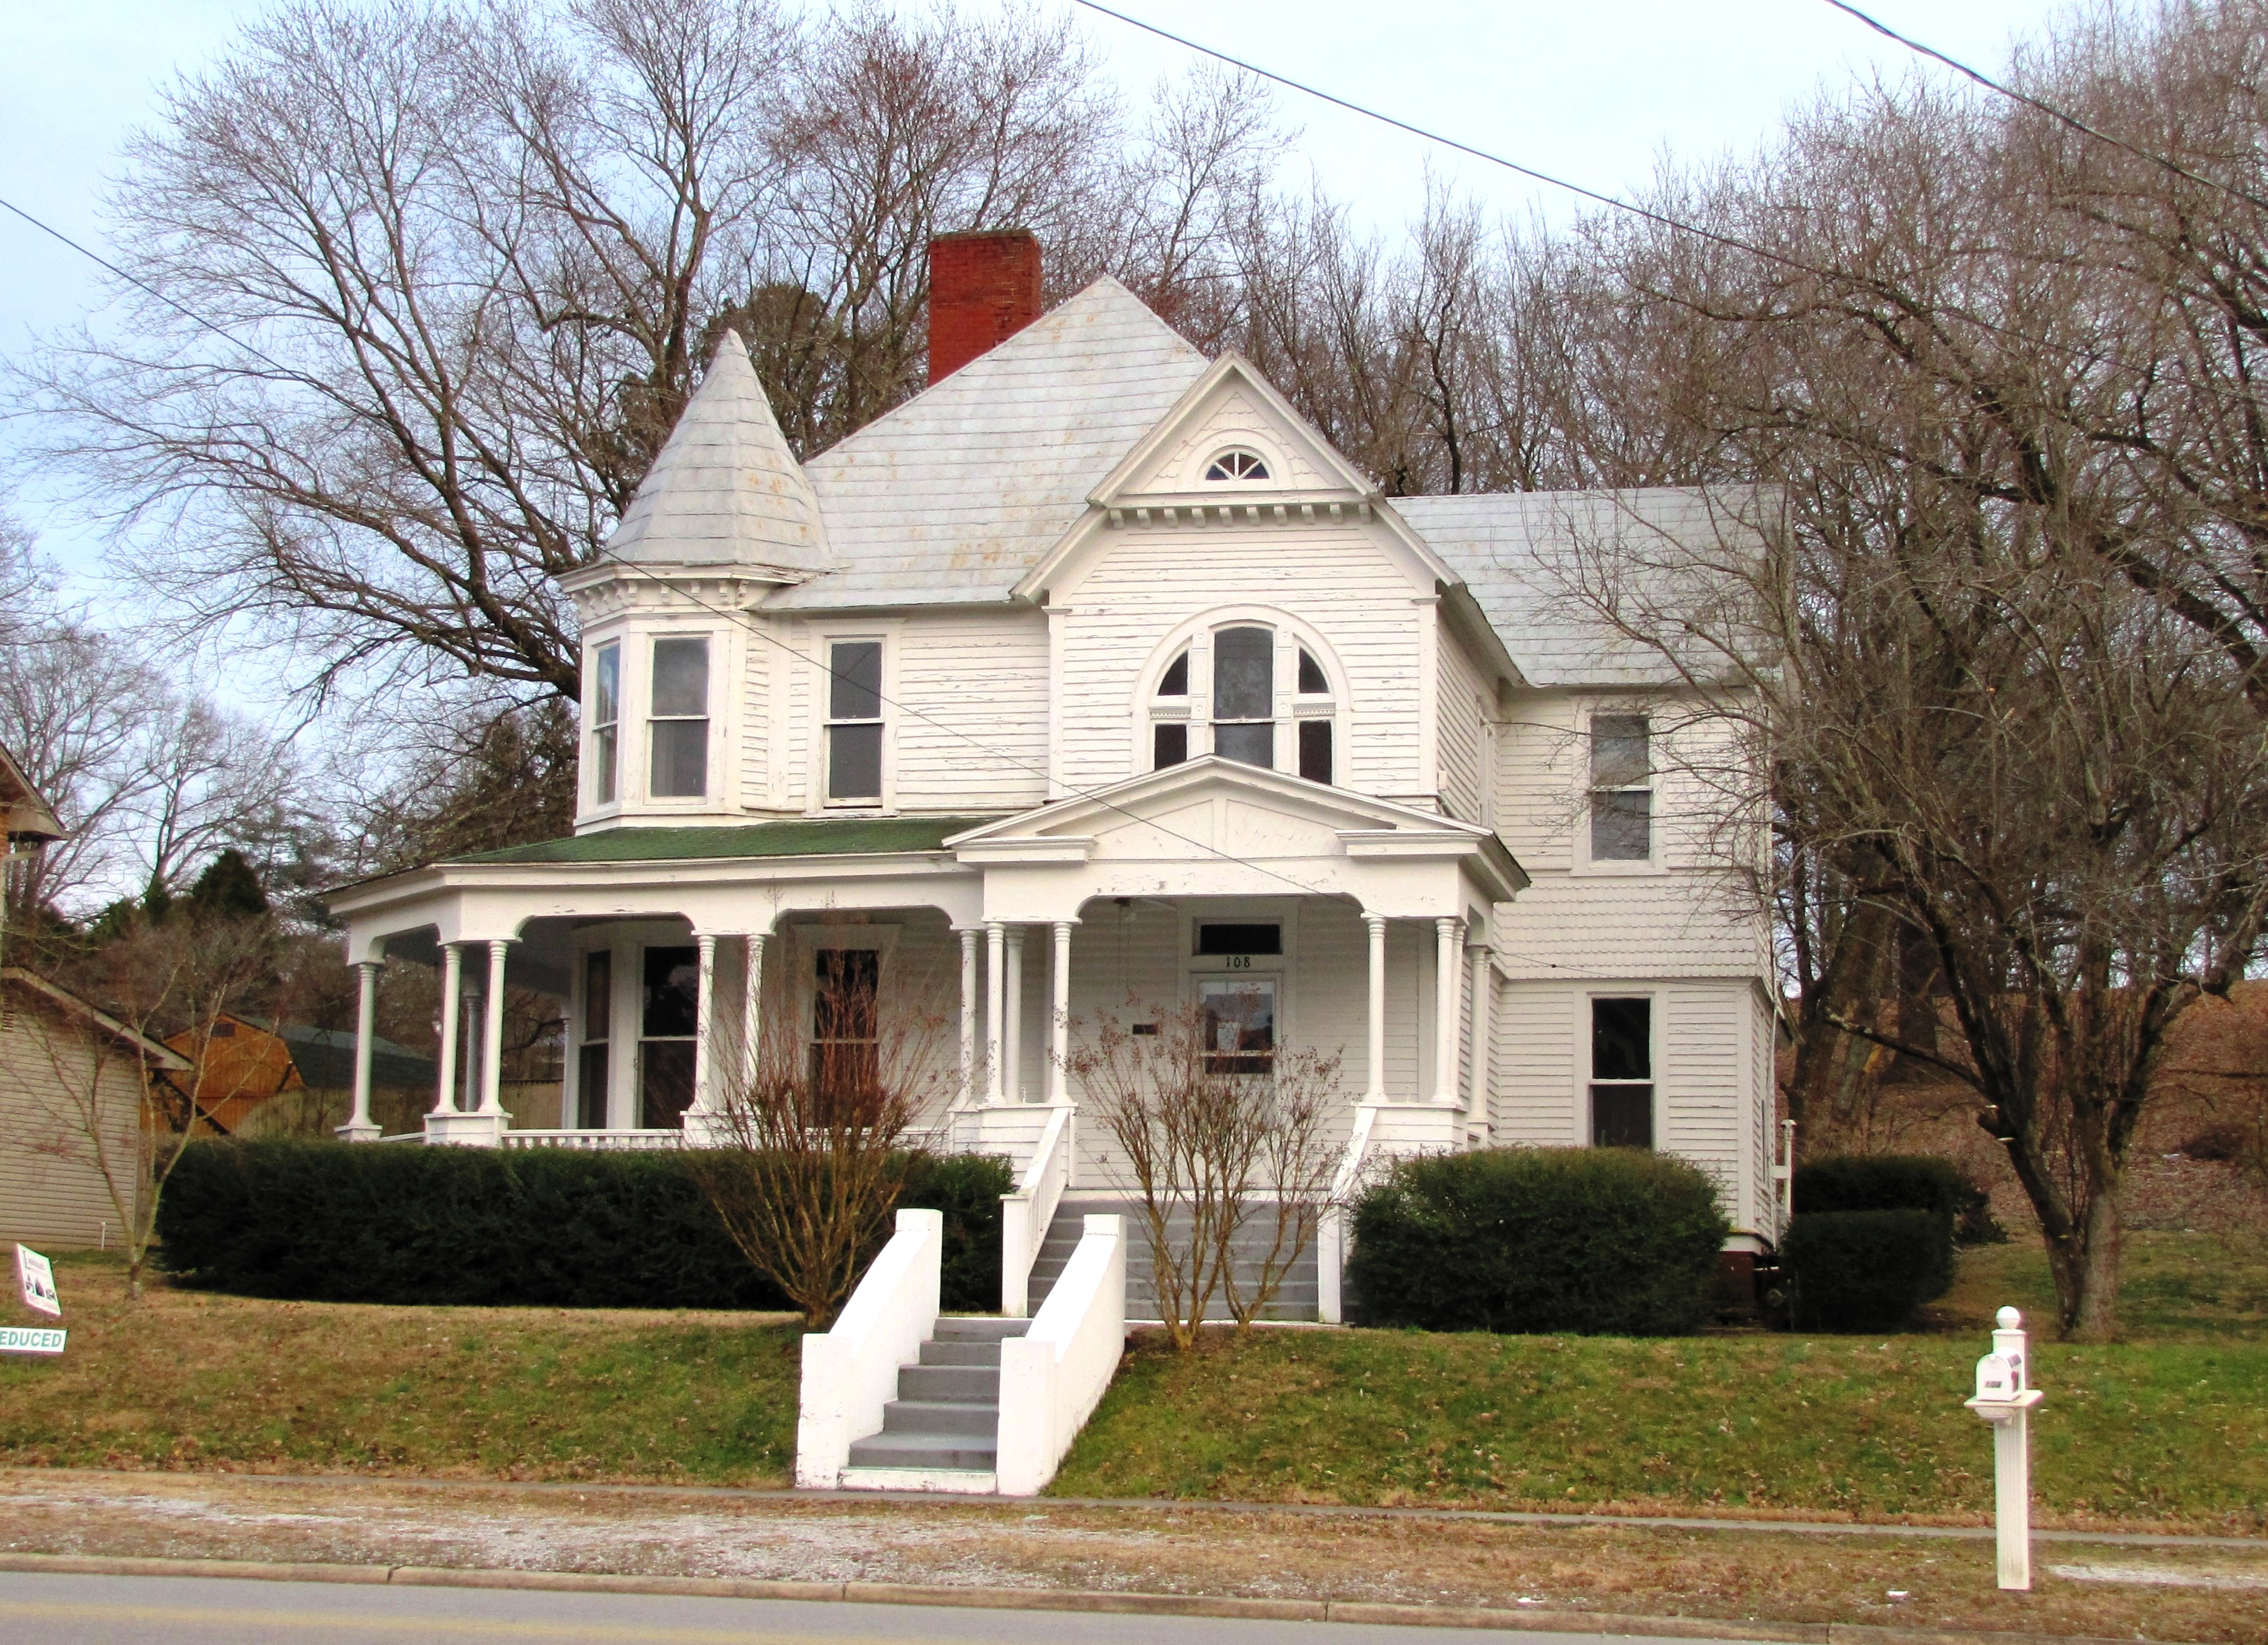 File Kingston Avenue Hd House Tn1 Jpg Wikimedia Commons